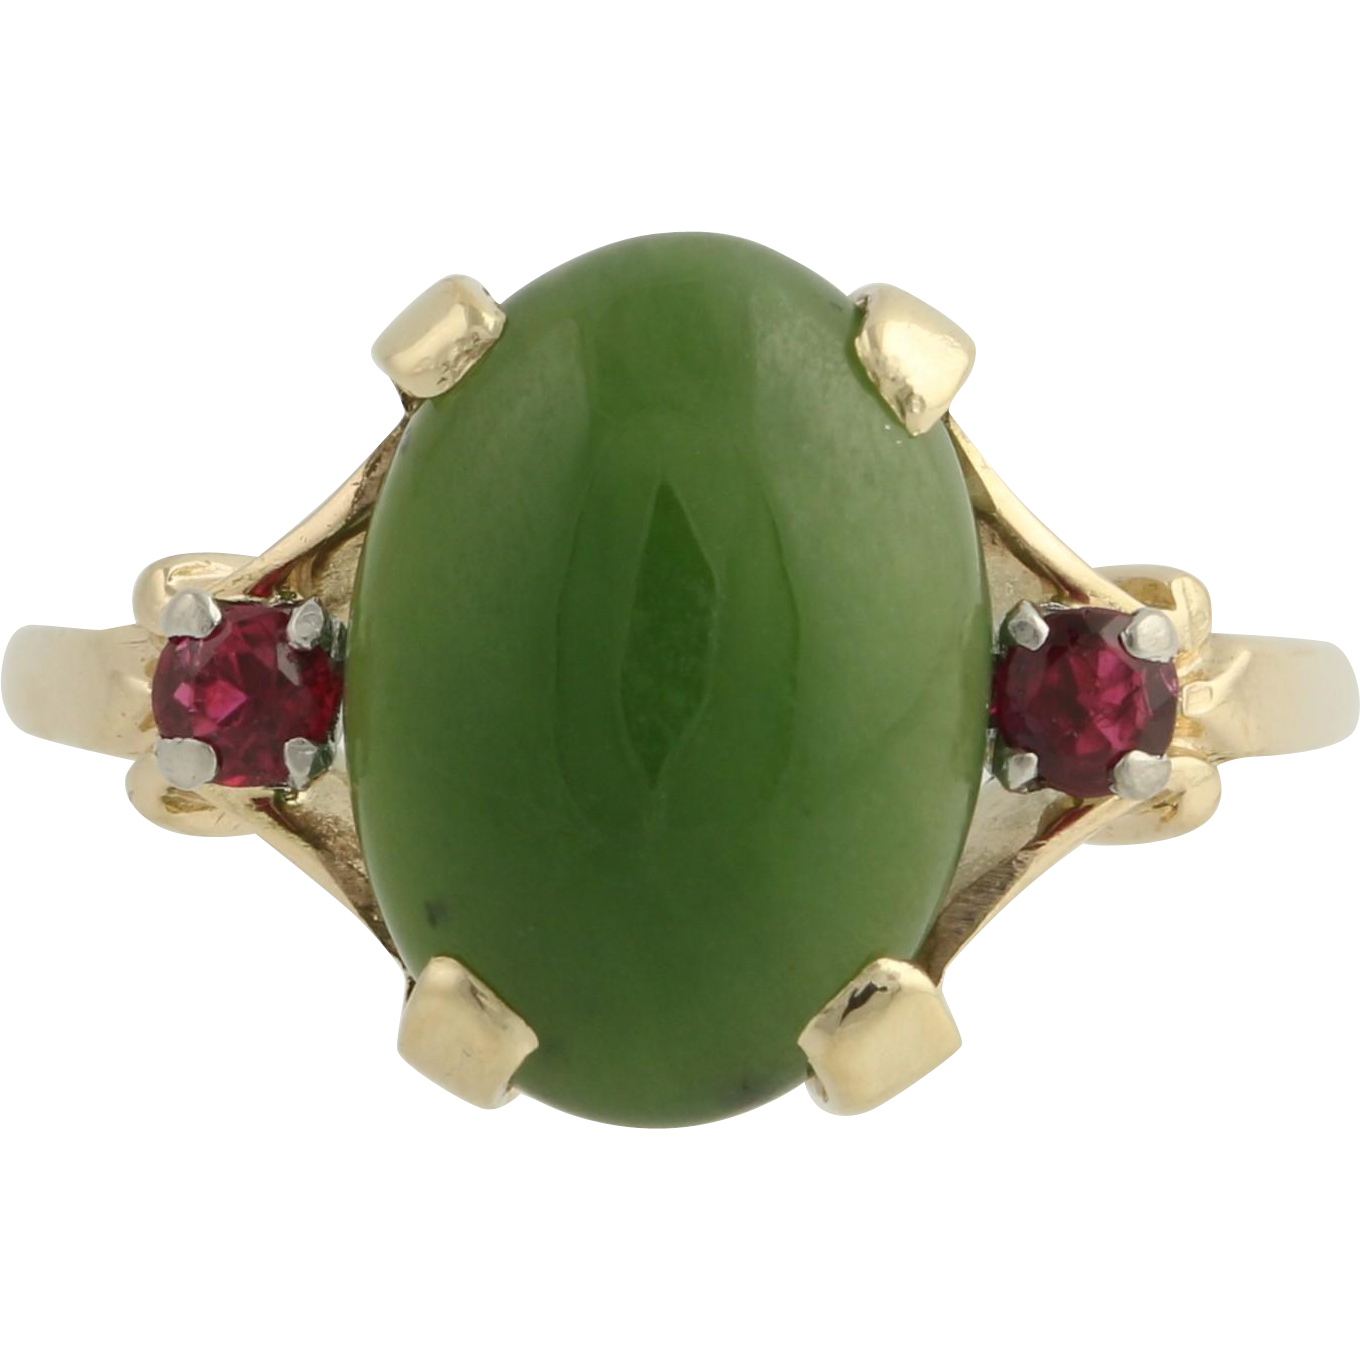 Vintage Tiffany & Co. Jade and Ruby Cocktail Ring - 14k Gold and Palladium 4.80ctw